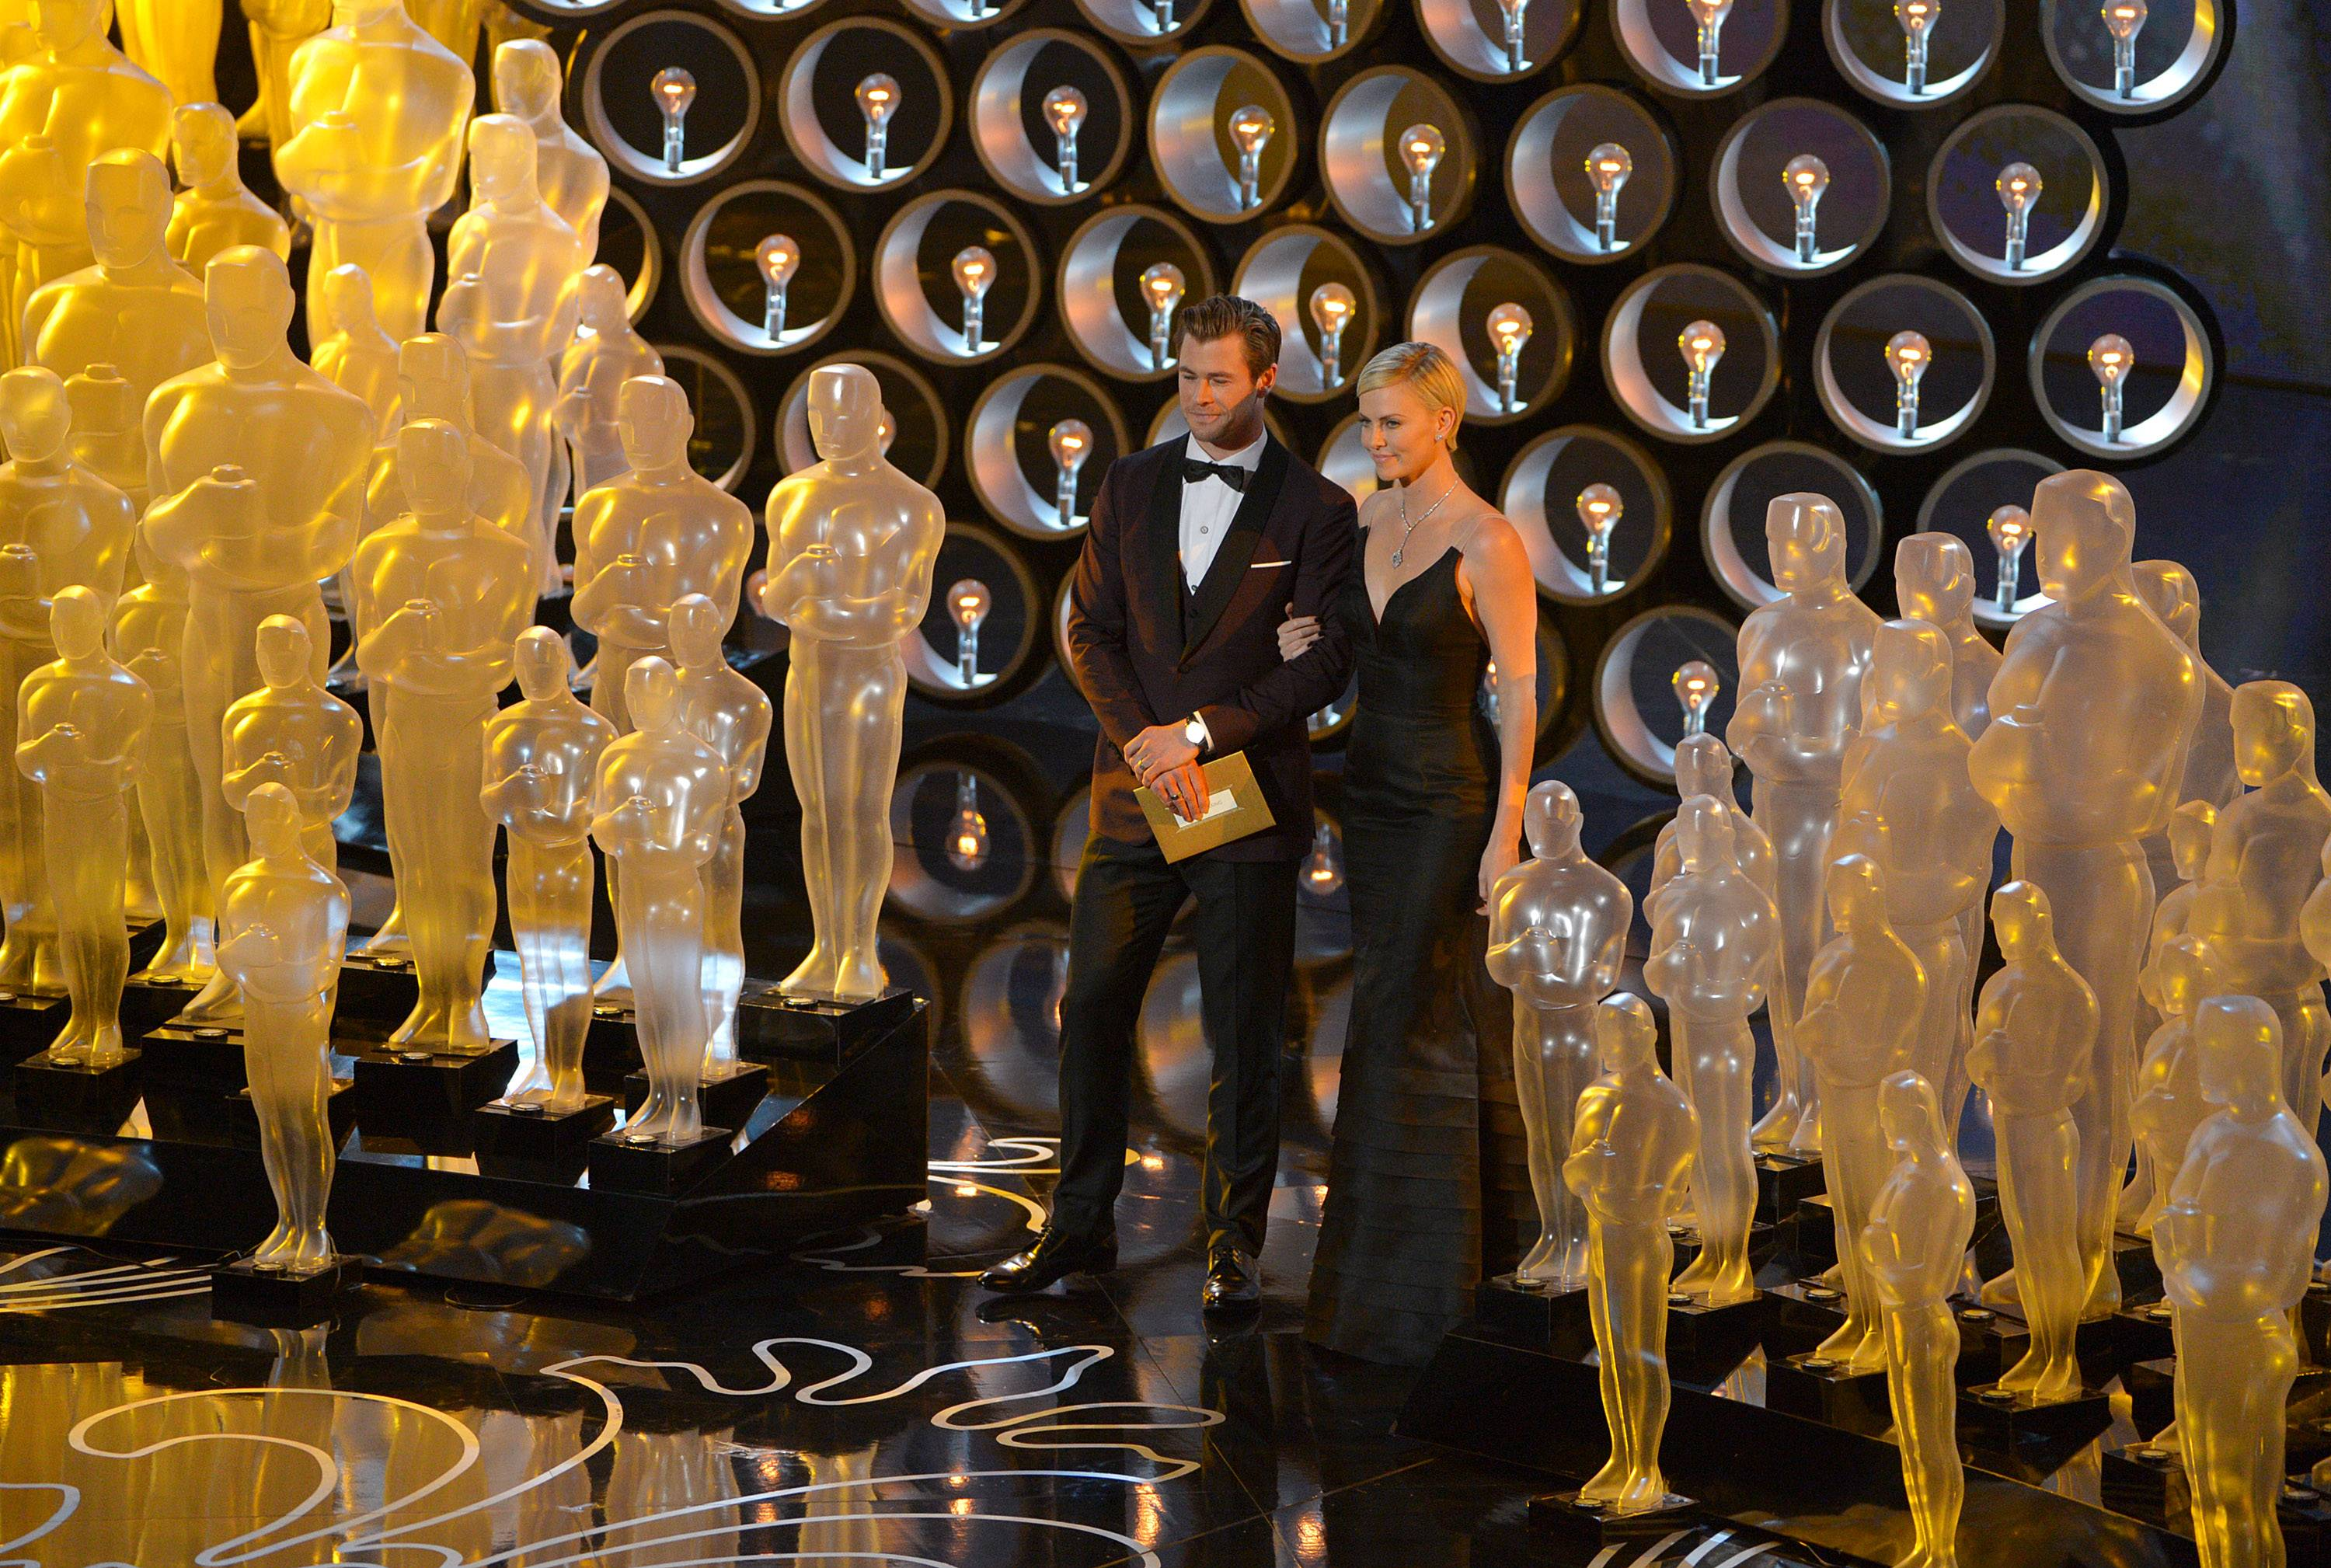 Chris Hemsworth, left, and Charlize Theron speak on stage during the Oscars.